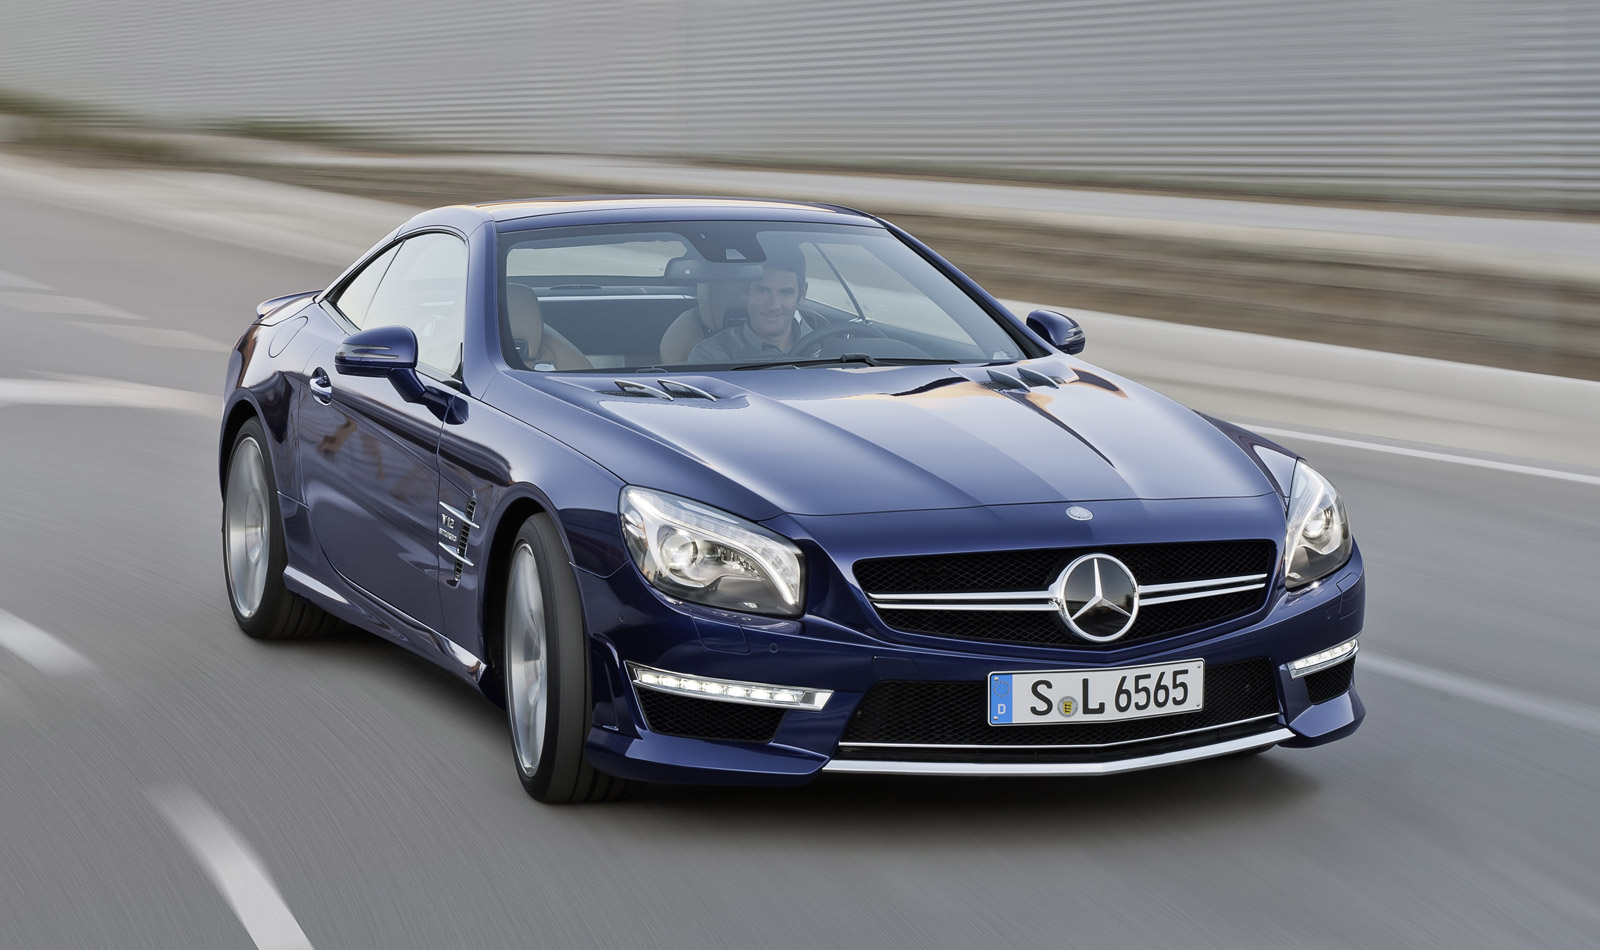 2013 Mercedes-Benz SL65 AMG Preview: 2012 New York Auto Show